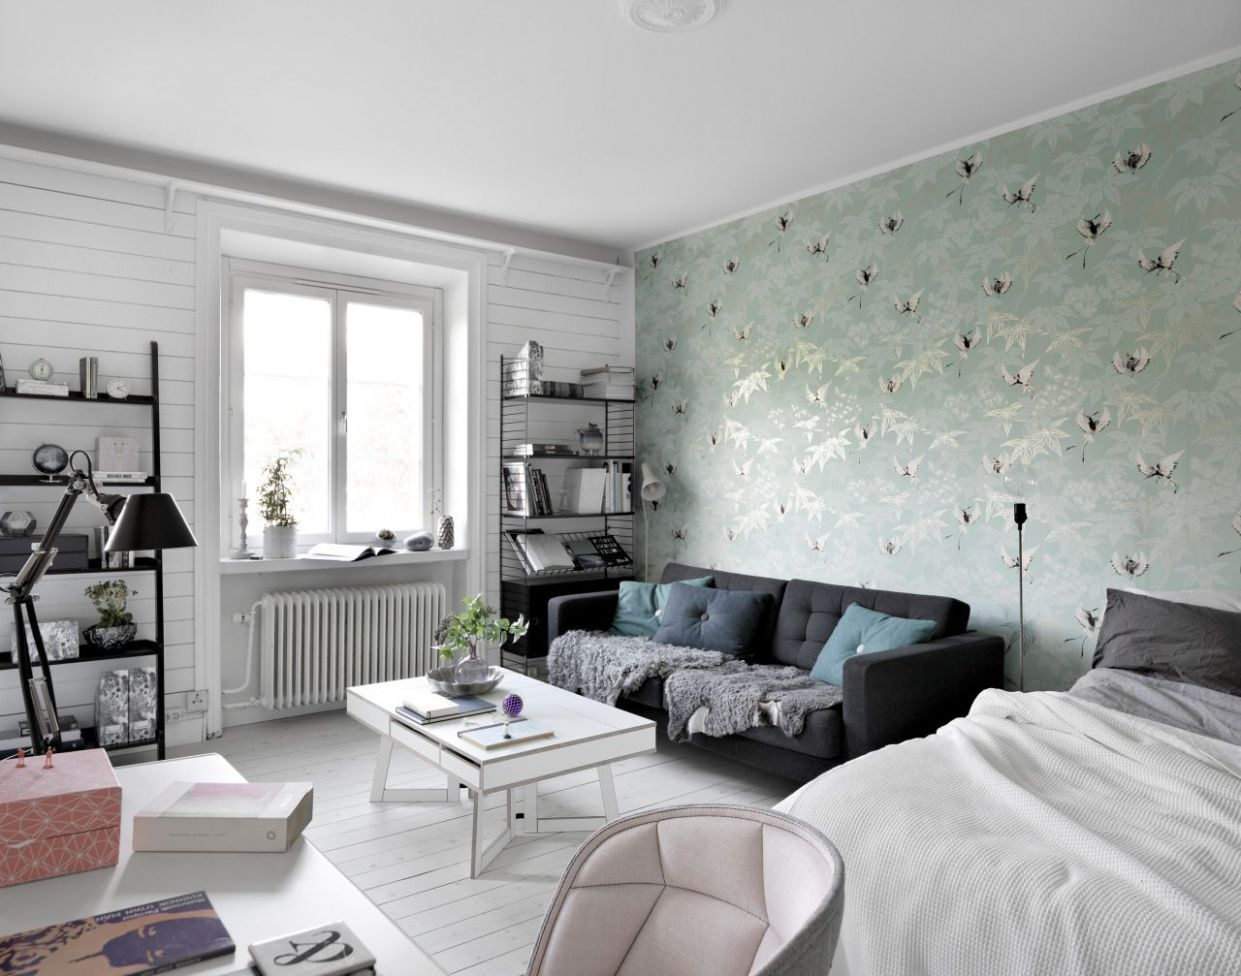 11 Studio Apartment Ideas and Design that Boost Your Comfort ..